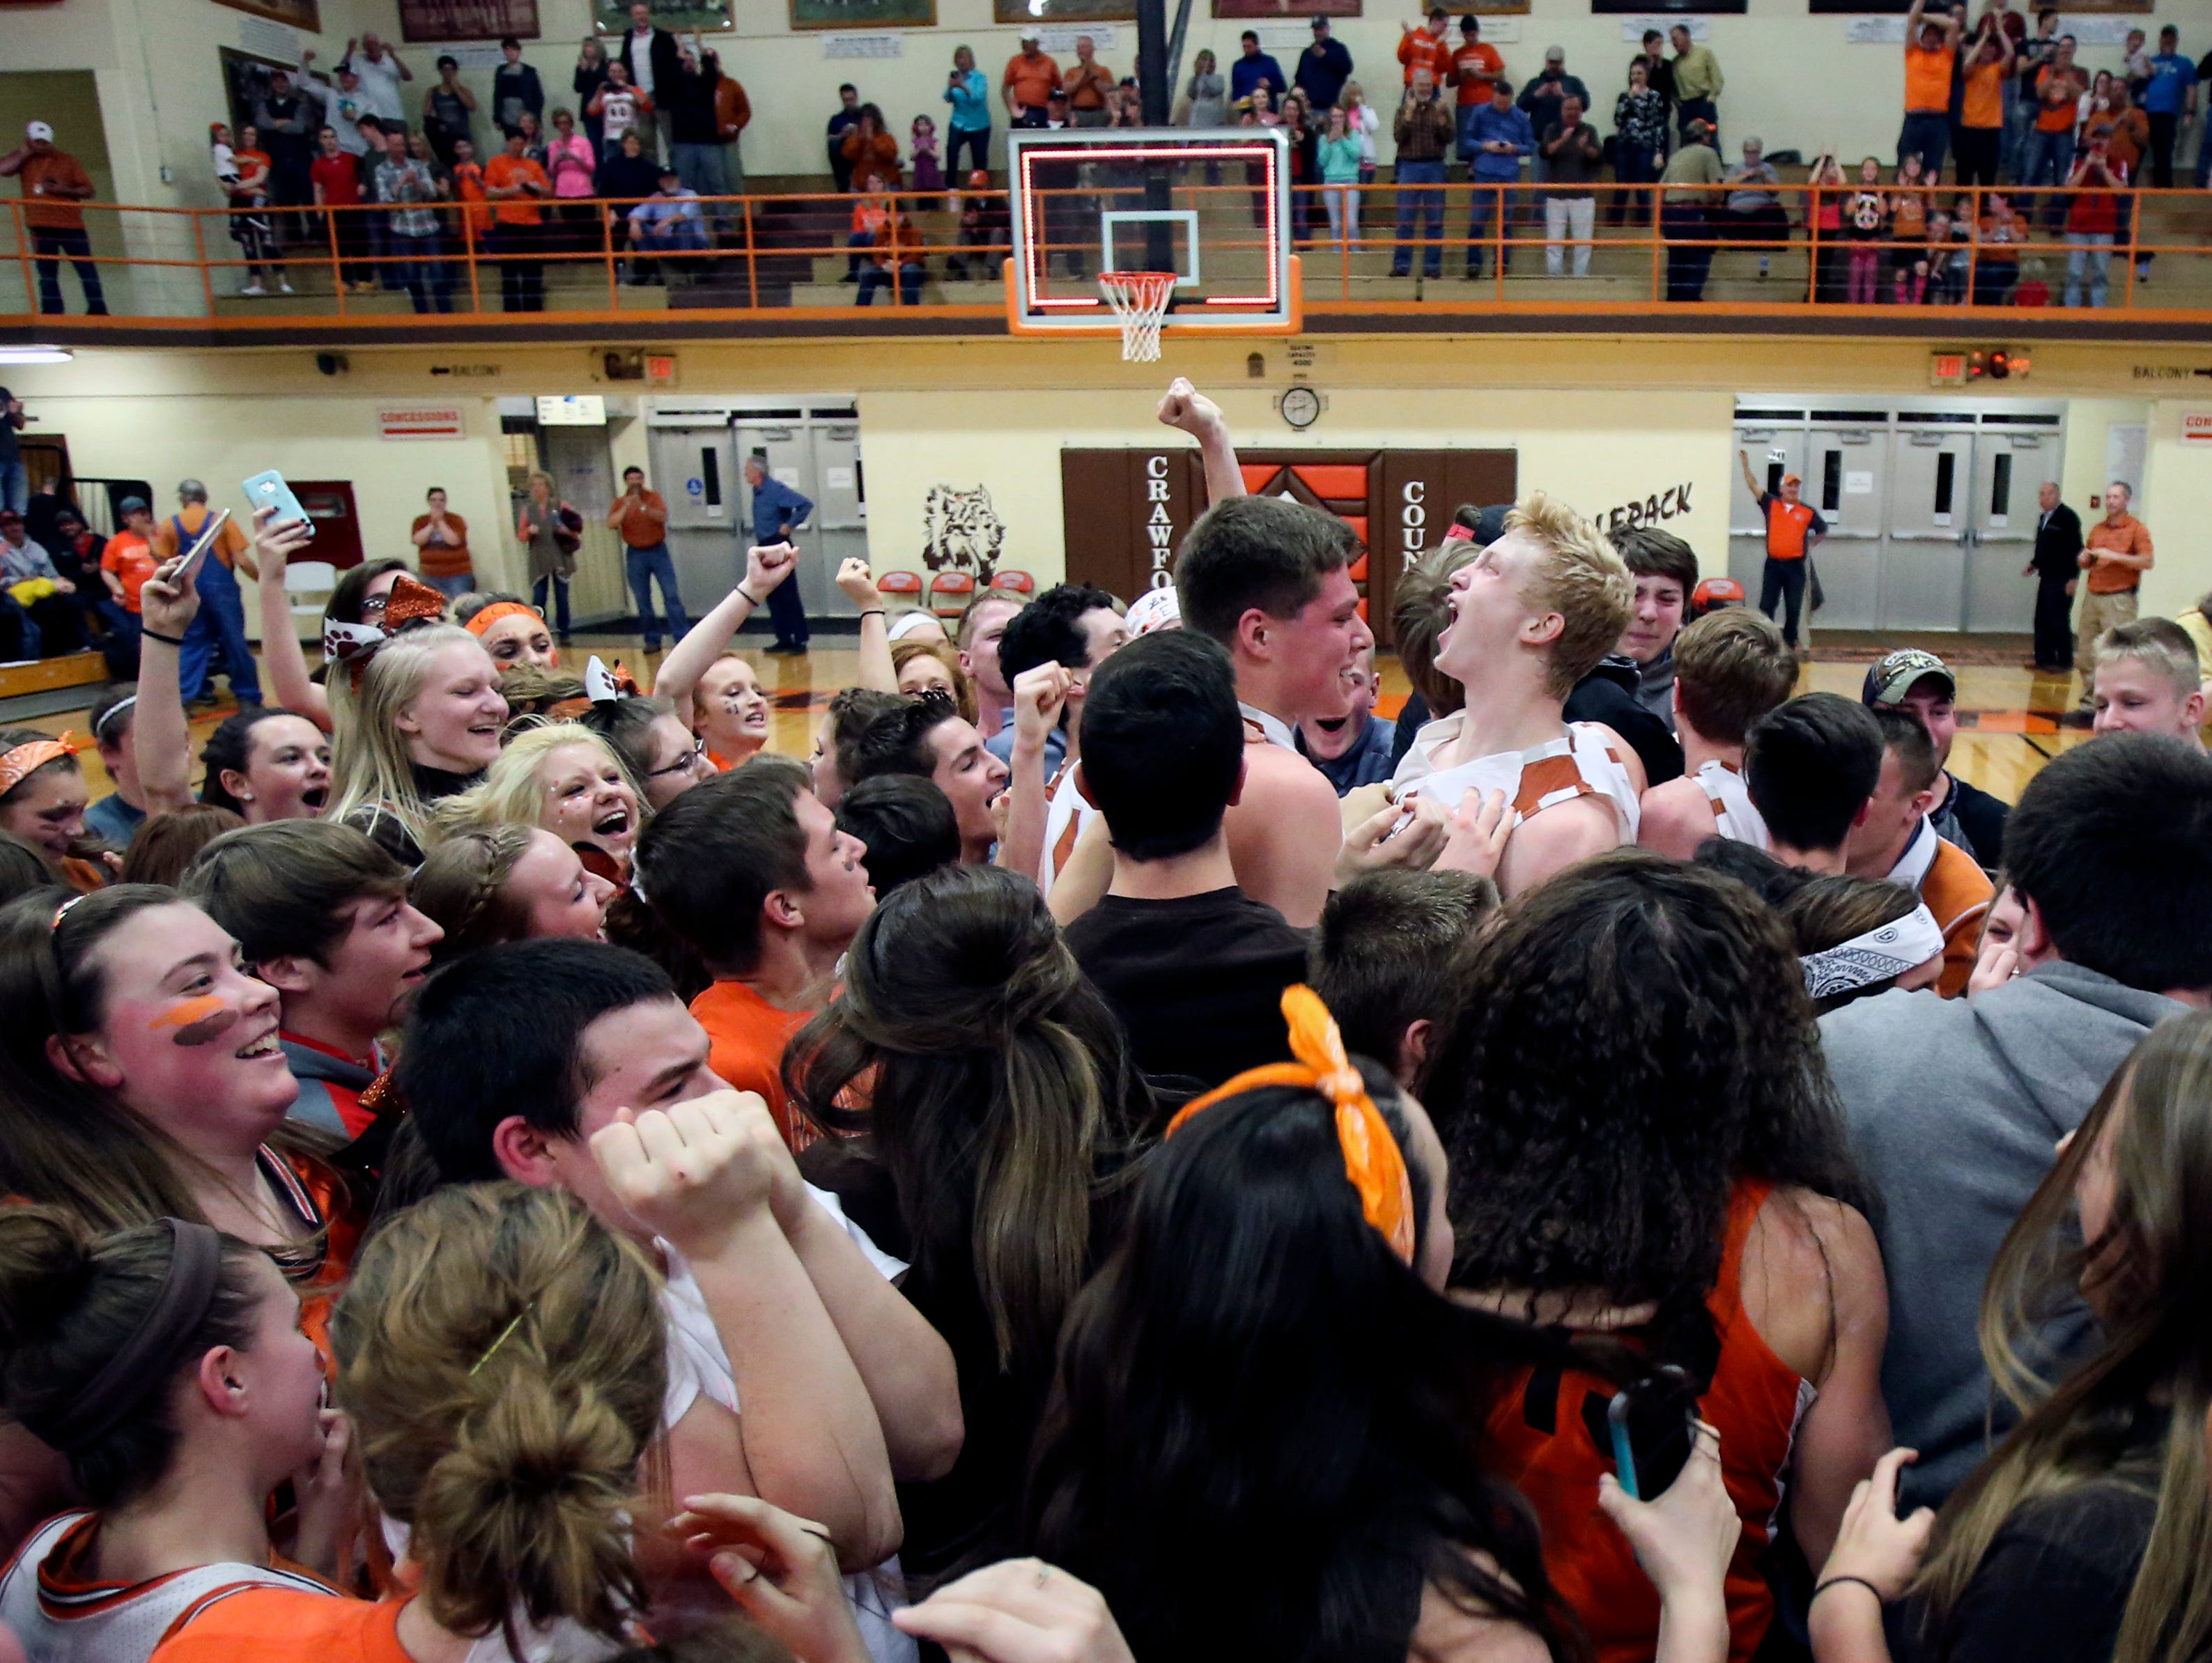 Crawford County celebrates after defeating top-ranked Providence in the Class 2A Sectional 46 championship game. Mar. 4, 2017